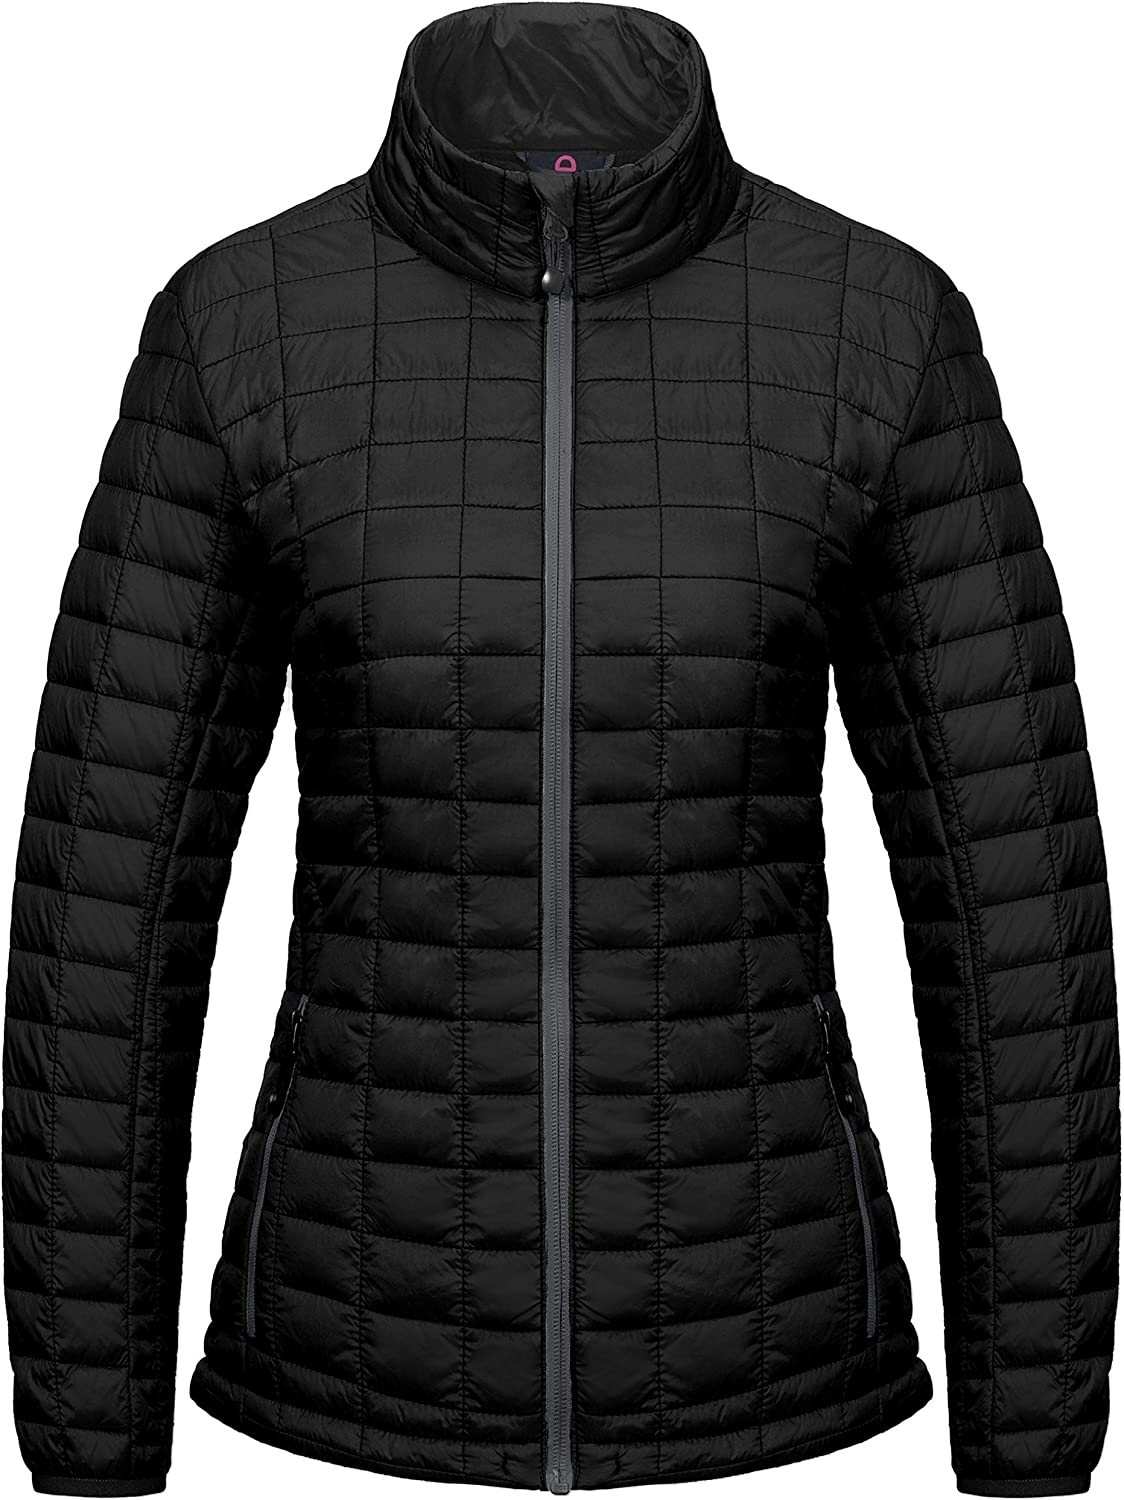 Little Donkey Andy Women's Puffer Jacket, Lightweight Fleece Lined Hiking Jacket with Post-Consumer Synthetic Insulation